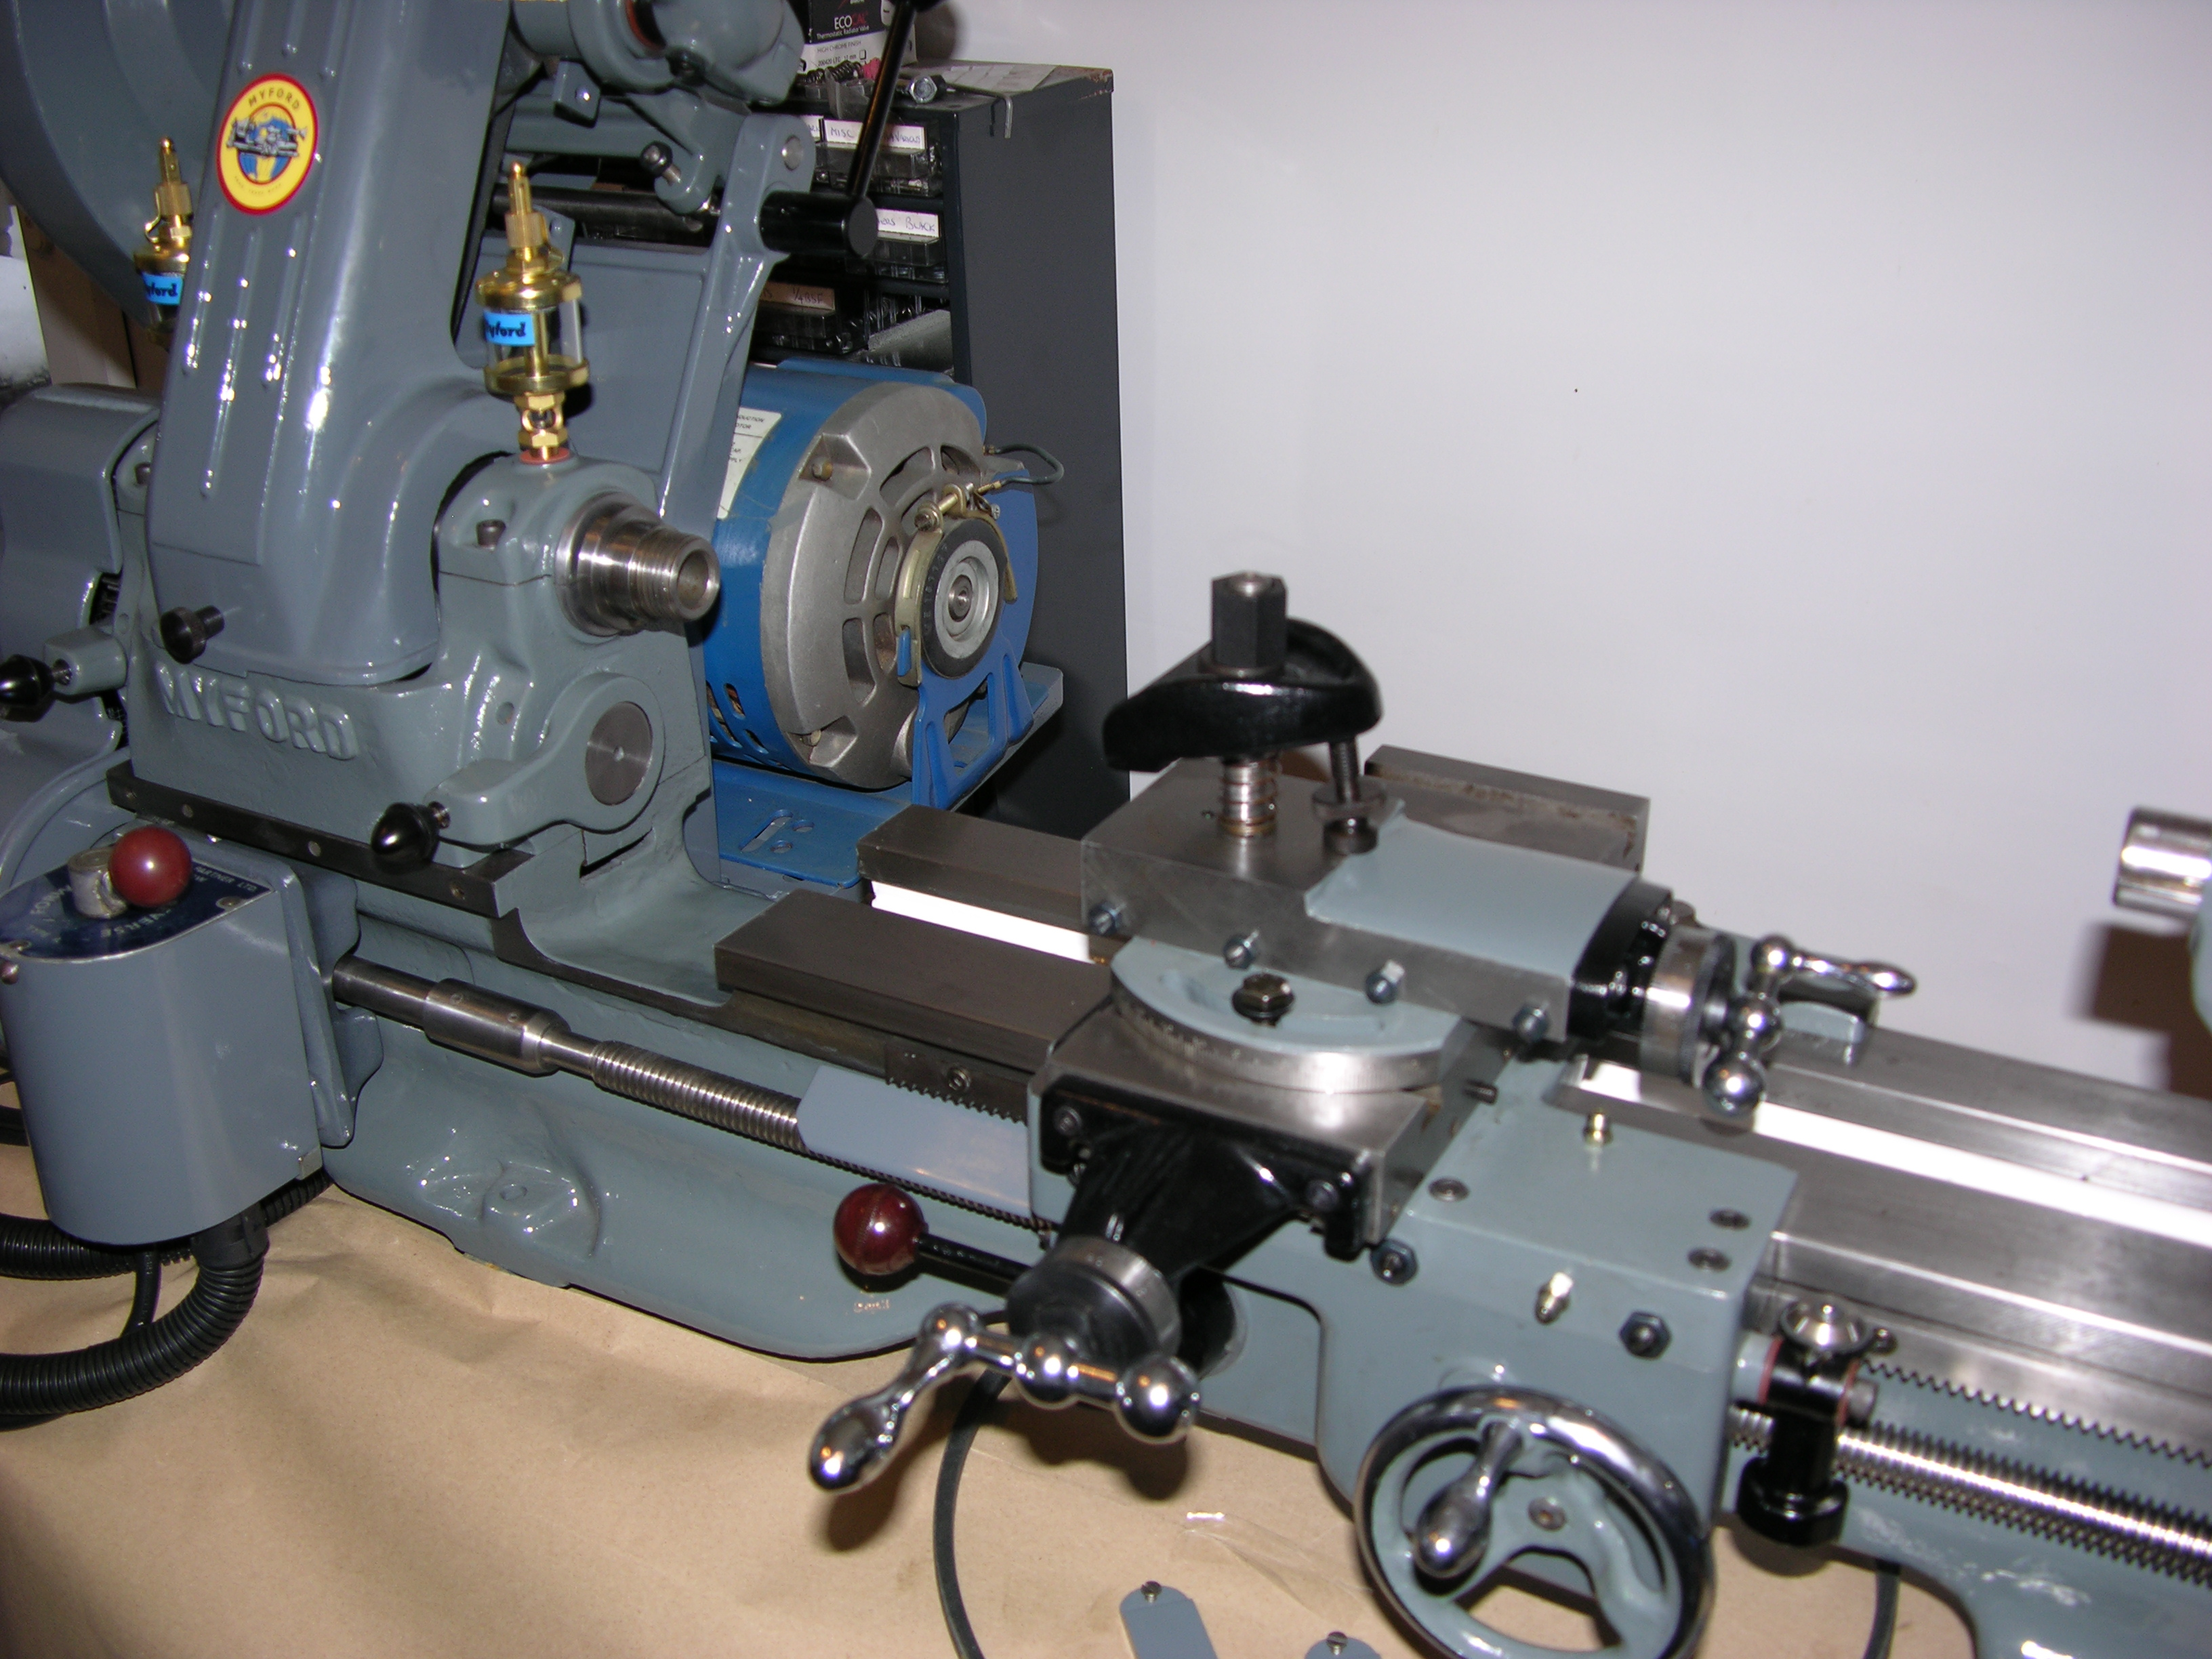 k11-130 how to connect to lathe